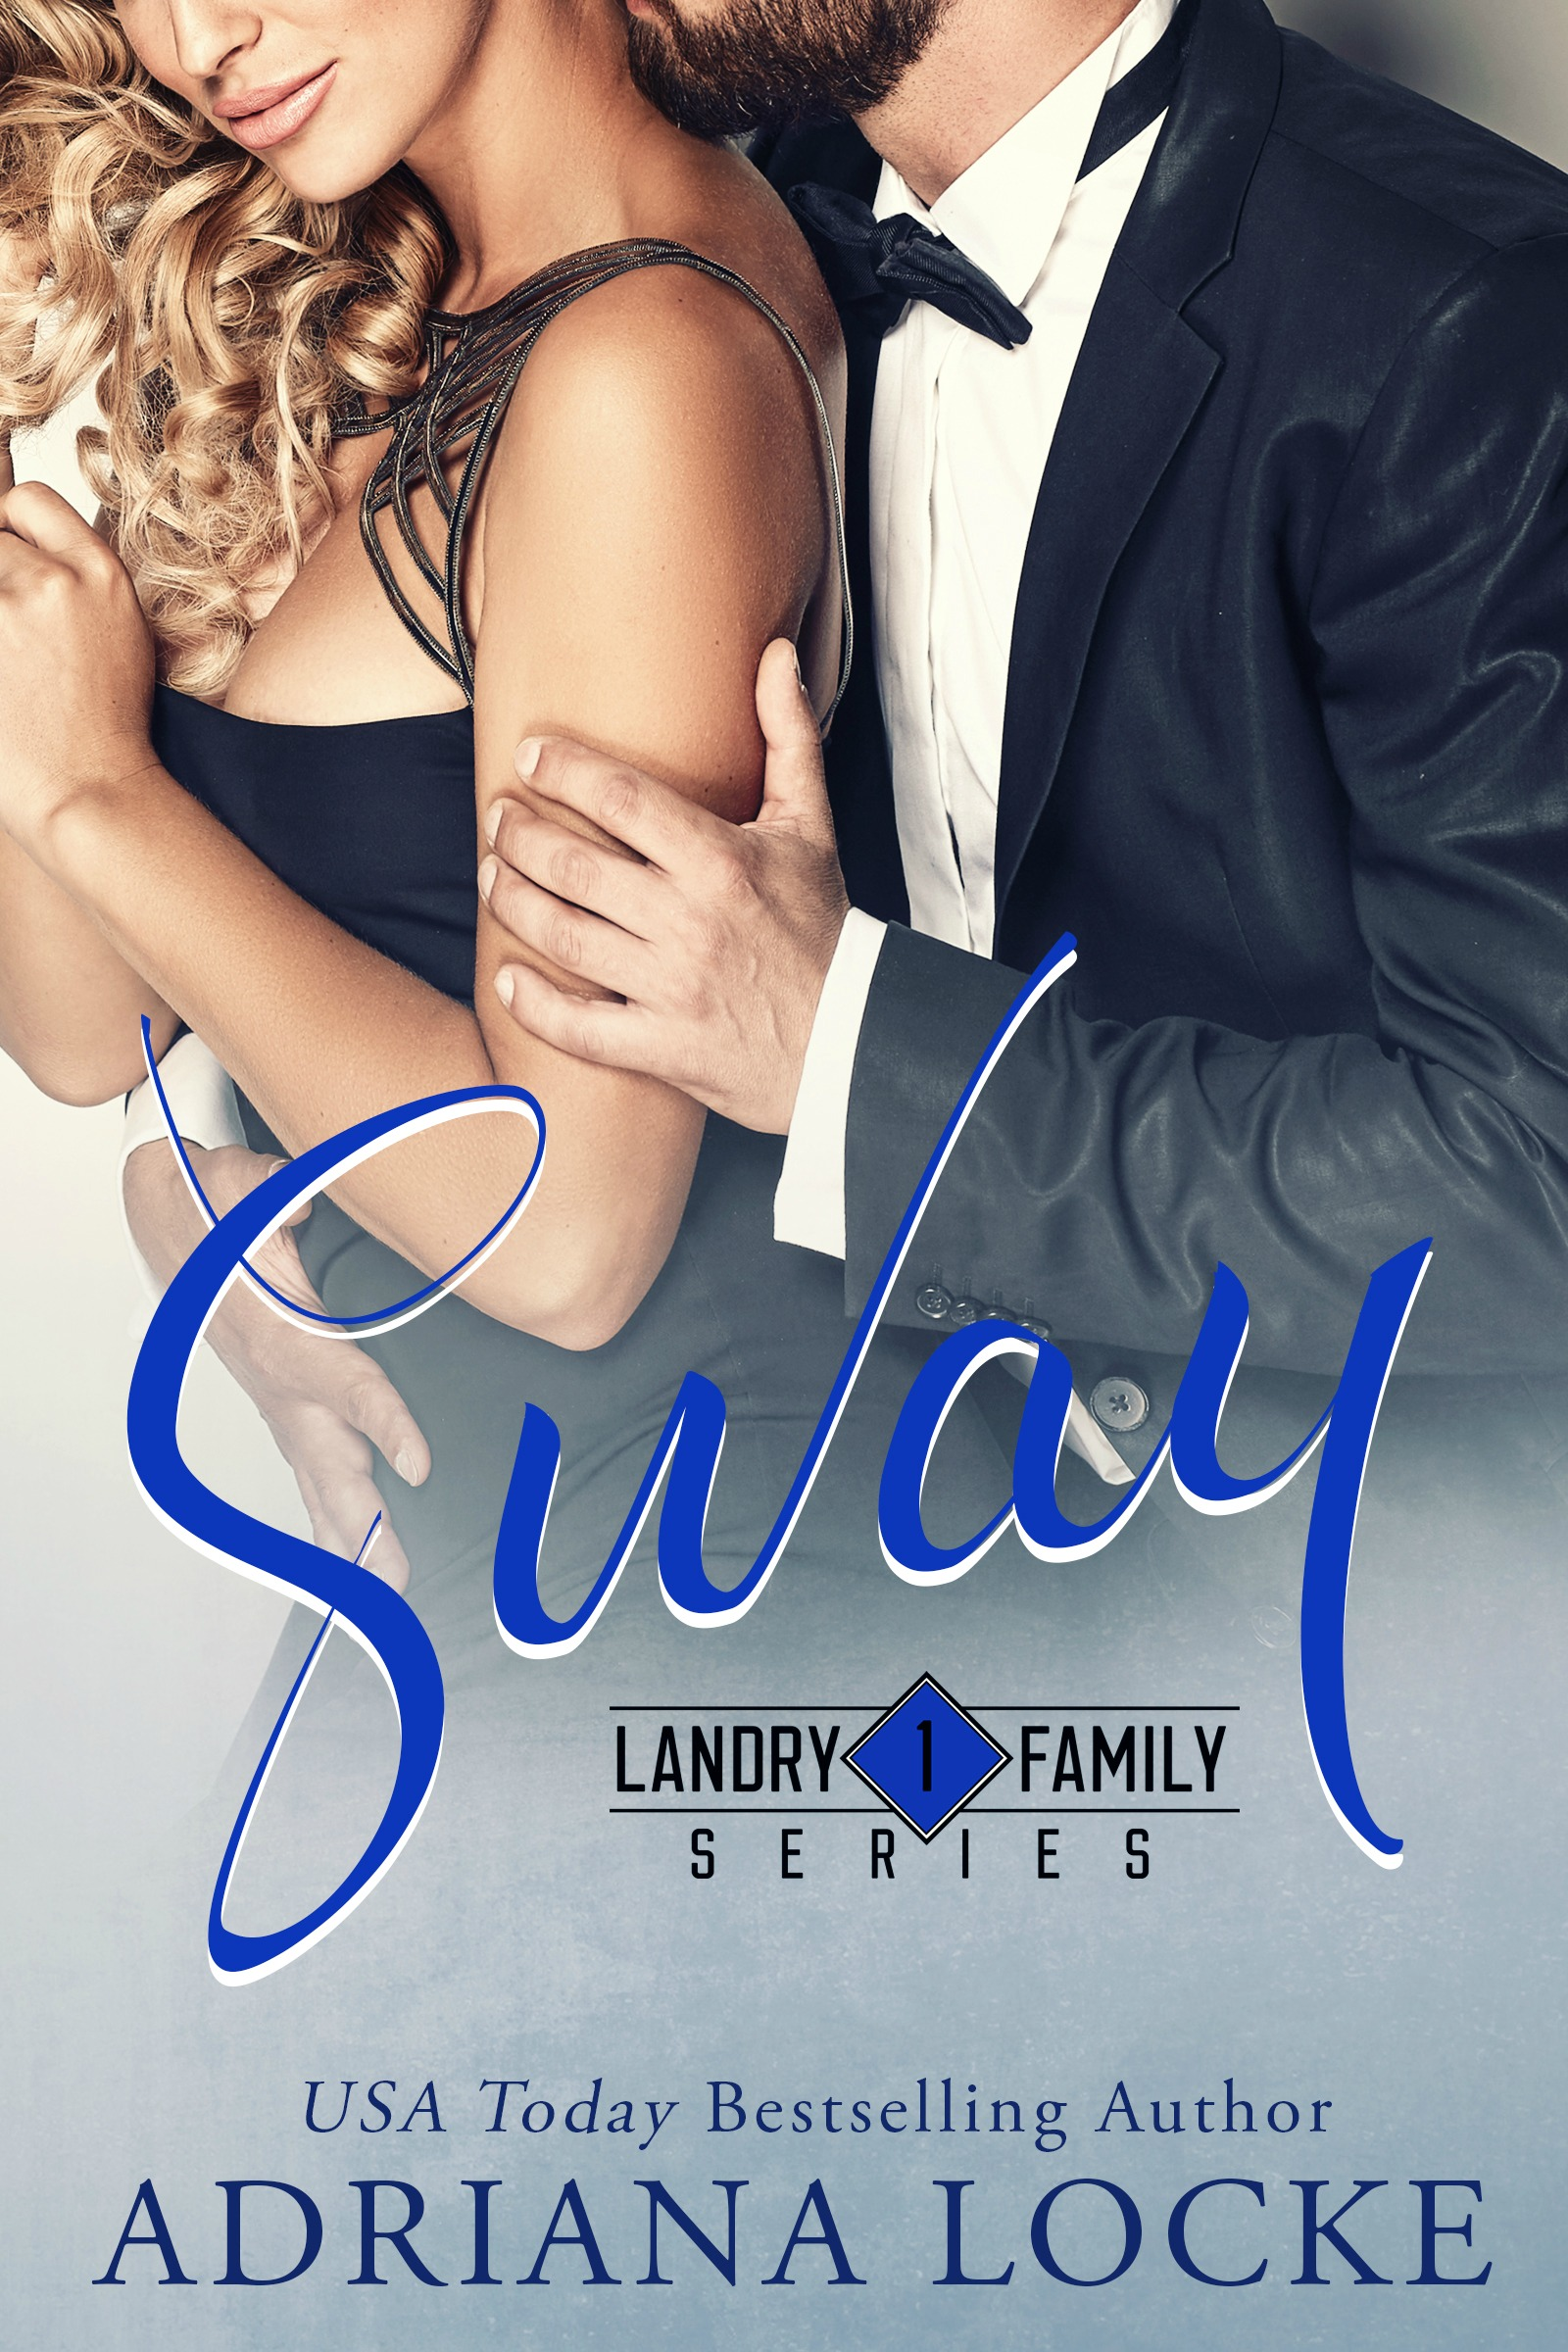 ALSO AVAILABLE IN THE LANDRY FAMILY SERIES      Book #1 Sway: Barrett and Allison     US:   http://amzn.to/2gHbZPv    UK:   http://amzn.to/2eAyqVT    CA:   http://amzn.to/2hwPGAx    AU:   http://amzn.to/2h3HVyj    Audible:   http://amzn.to/2hMh3qQ     Free in Kindle Unlimited